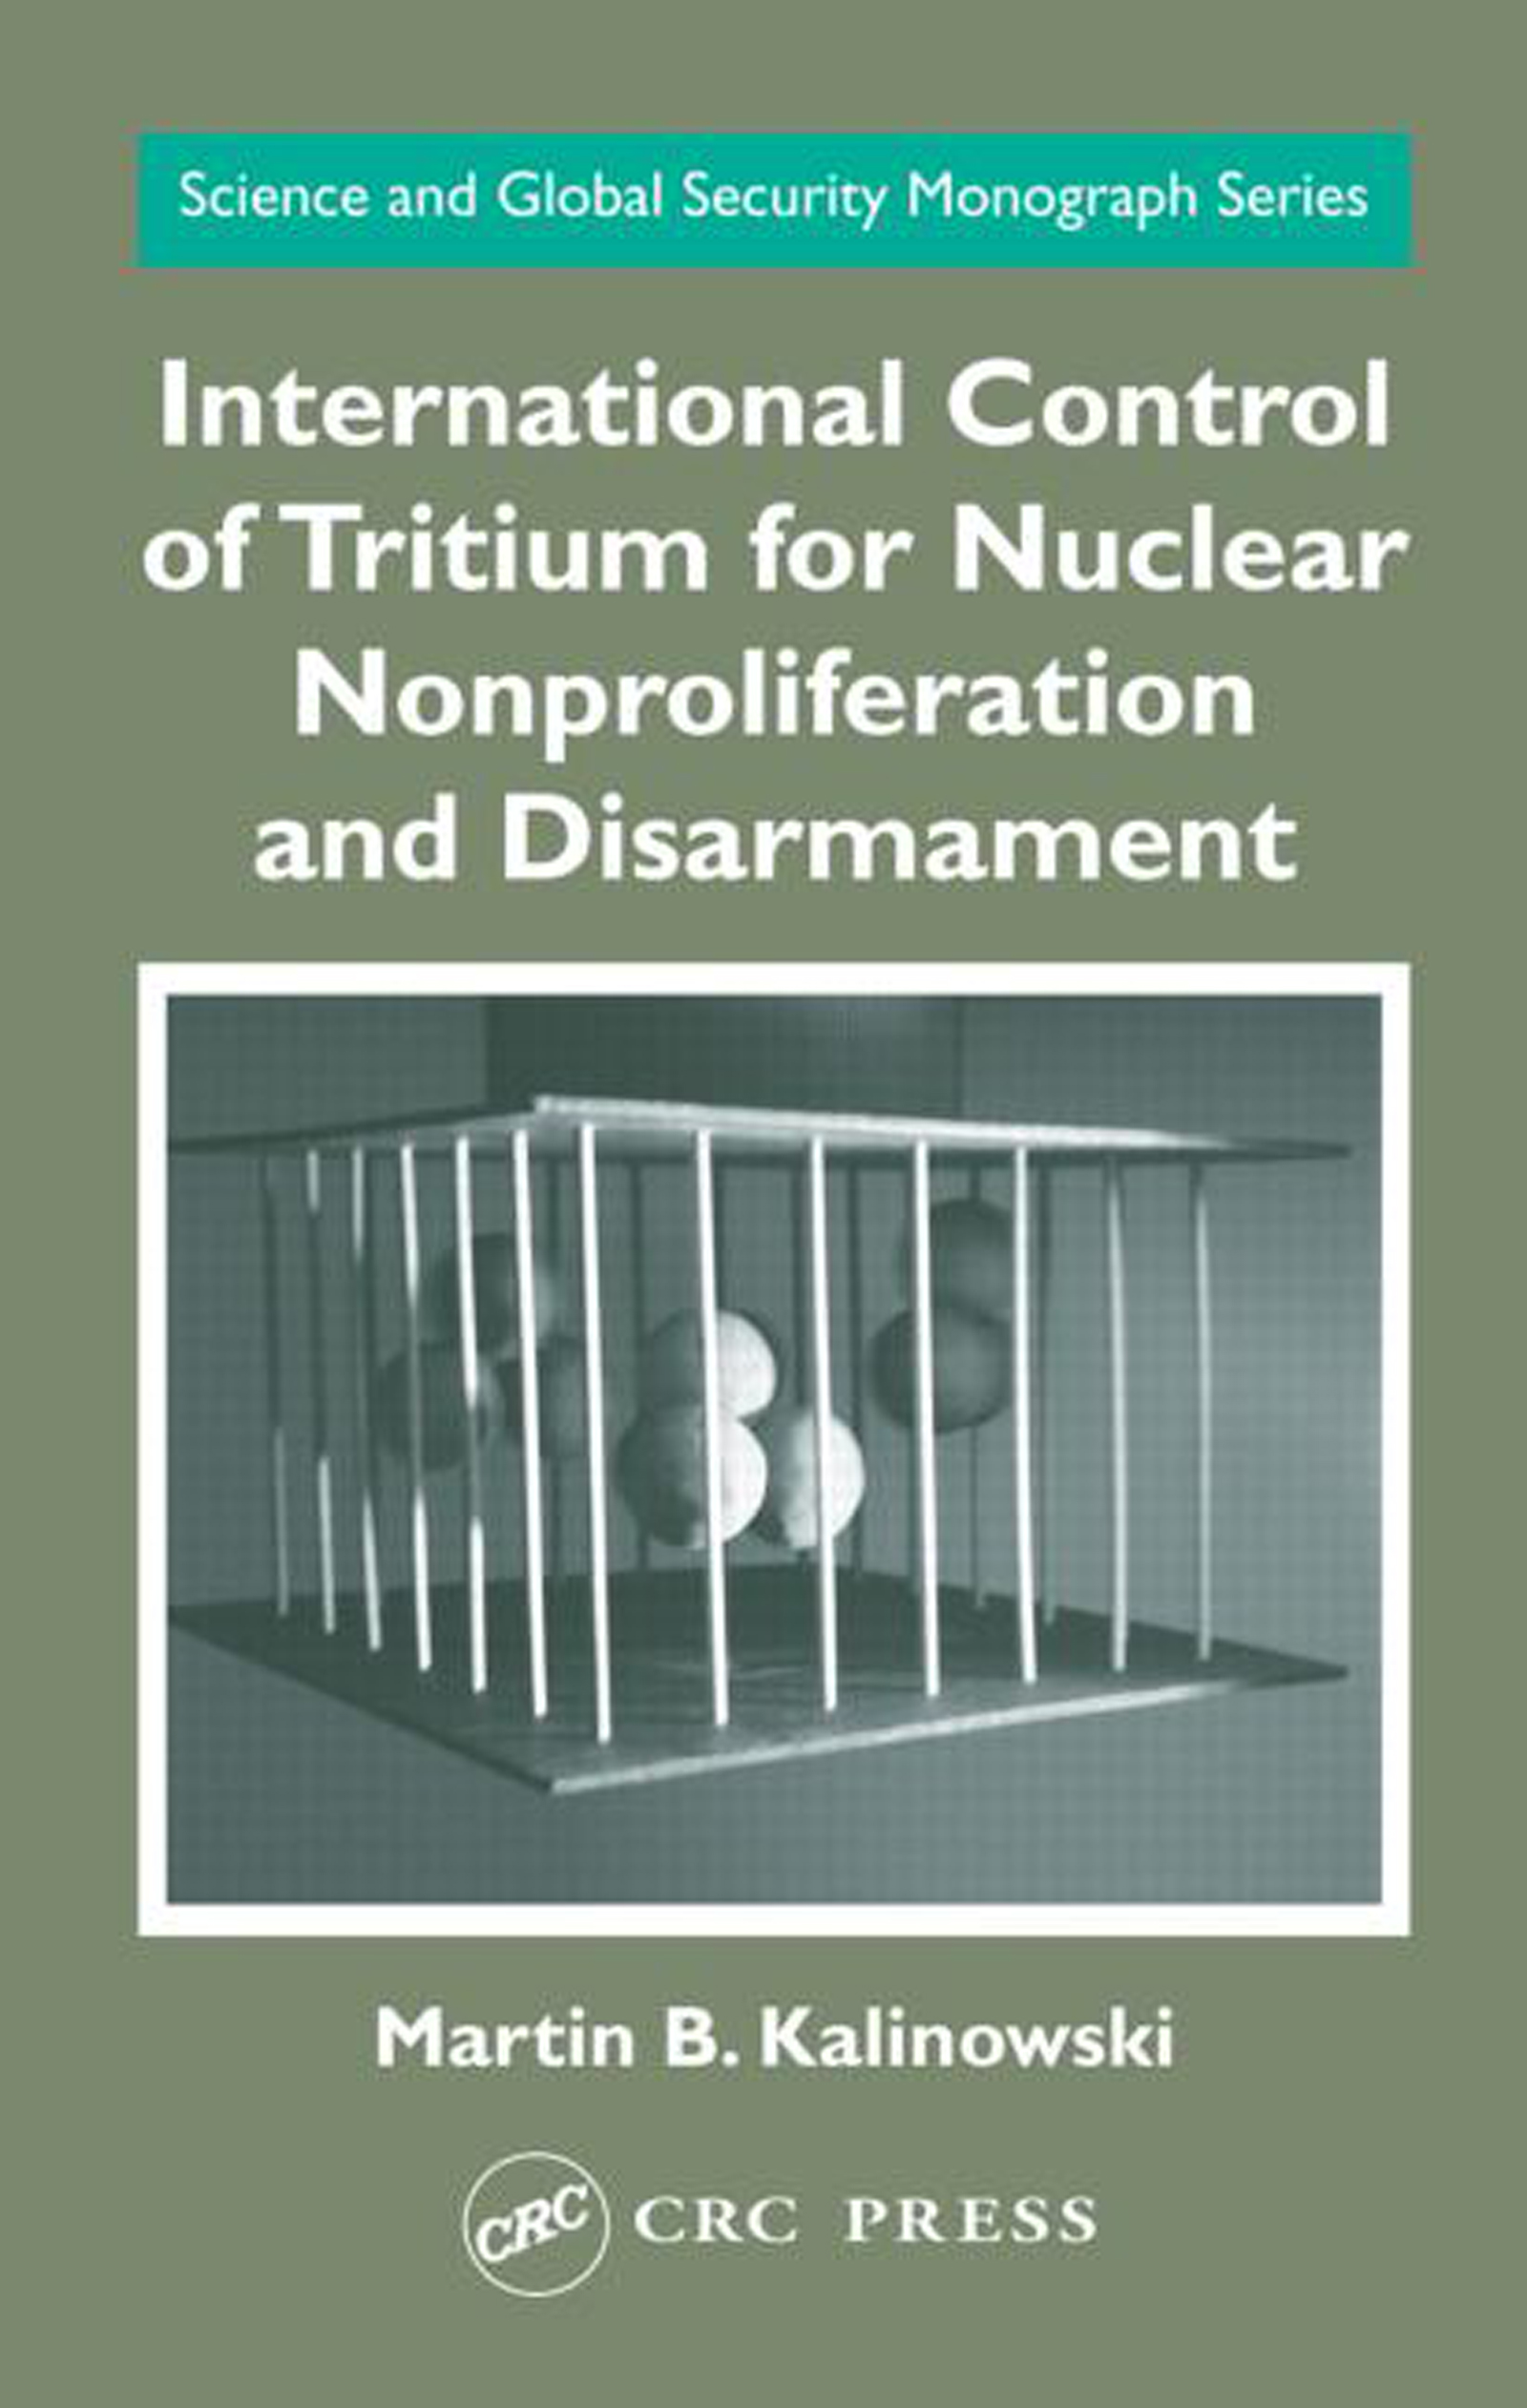 Download Ebook International Control of Tritium for Nuclear Nonproliferation and Disarmament by Martin B. Kalinowski Pdf